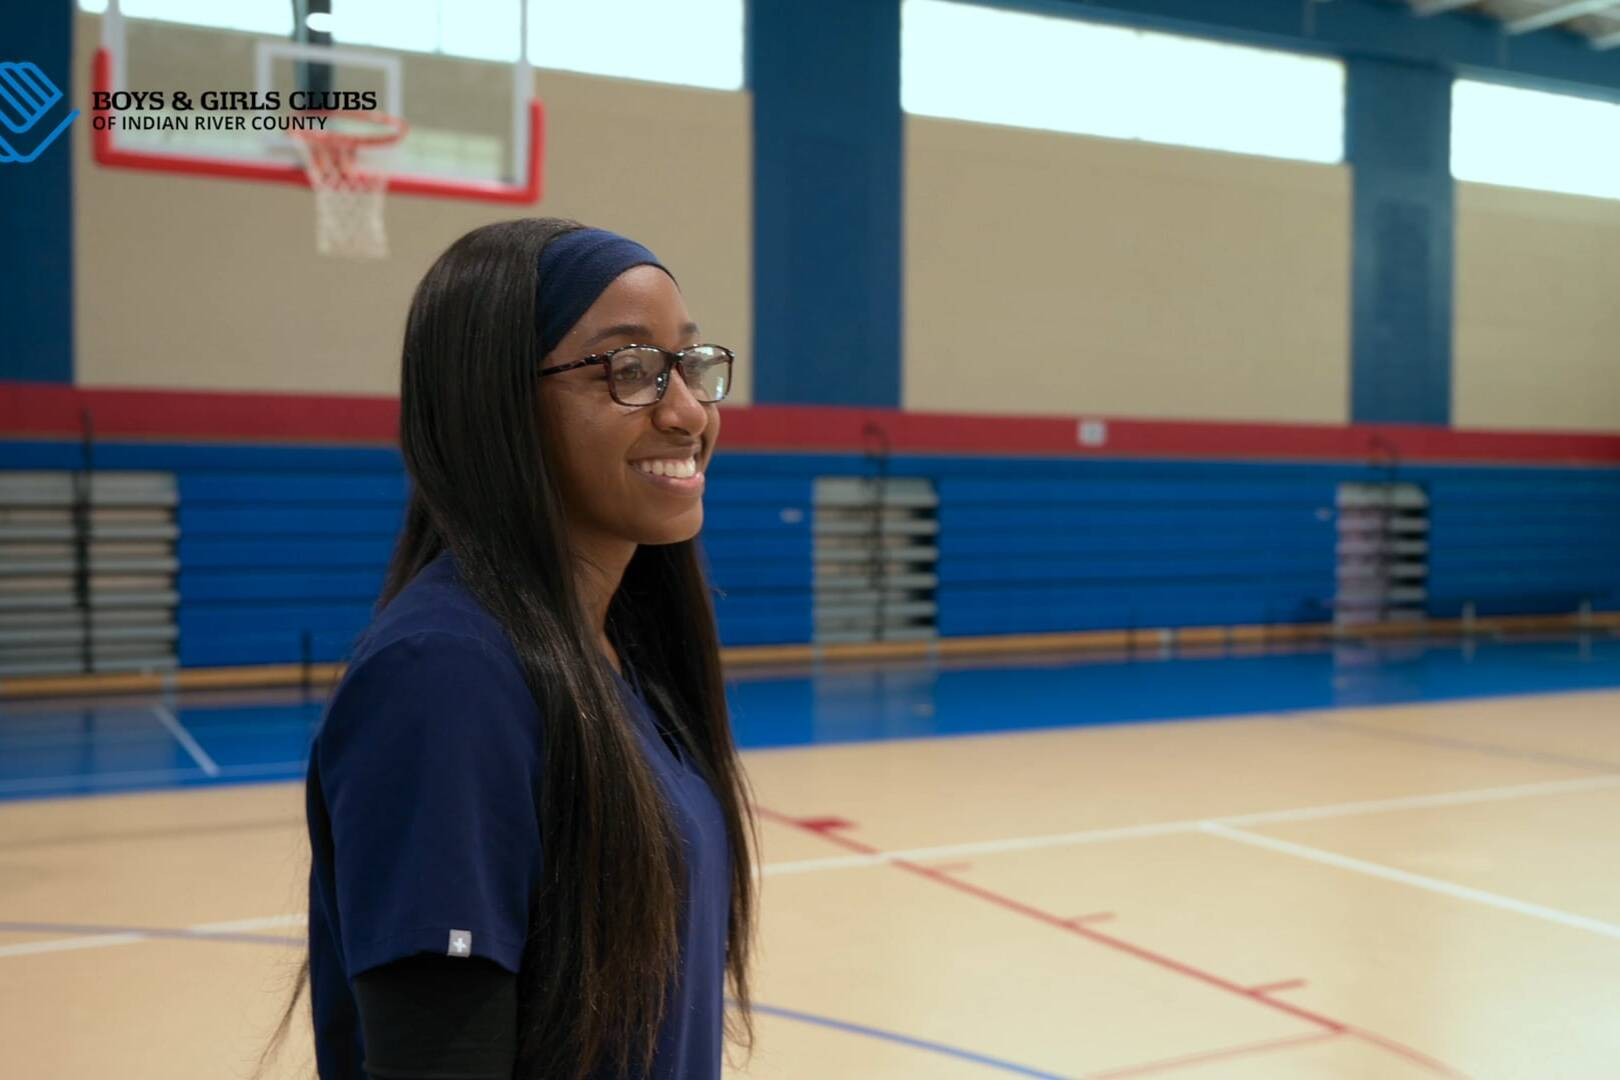 Ironside created a professional video for the Boys and Girls Club of Vero Beach